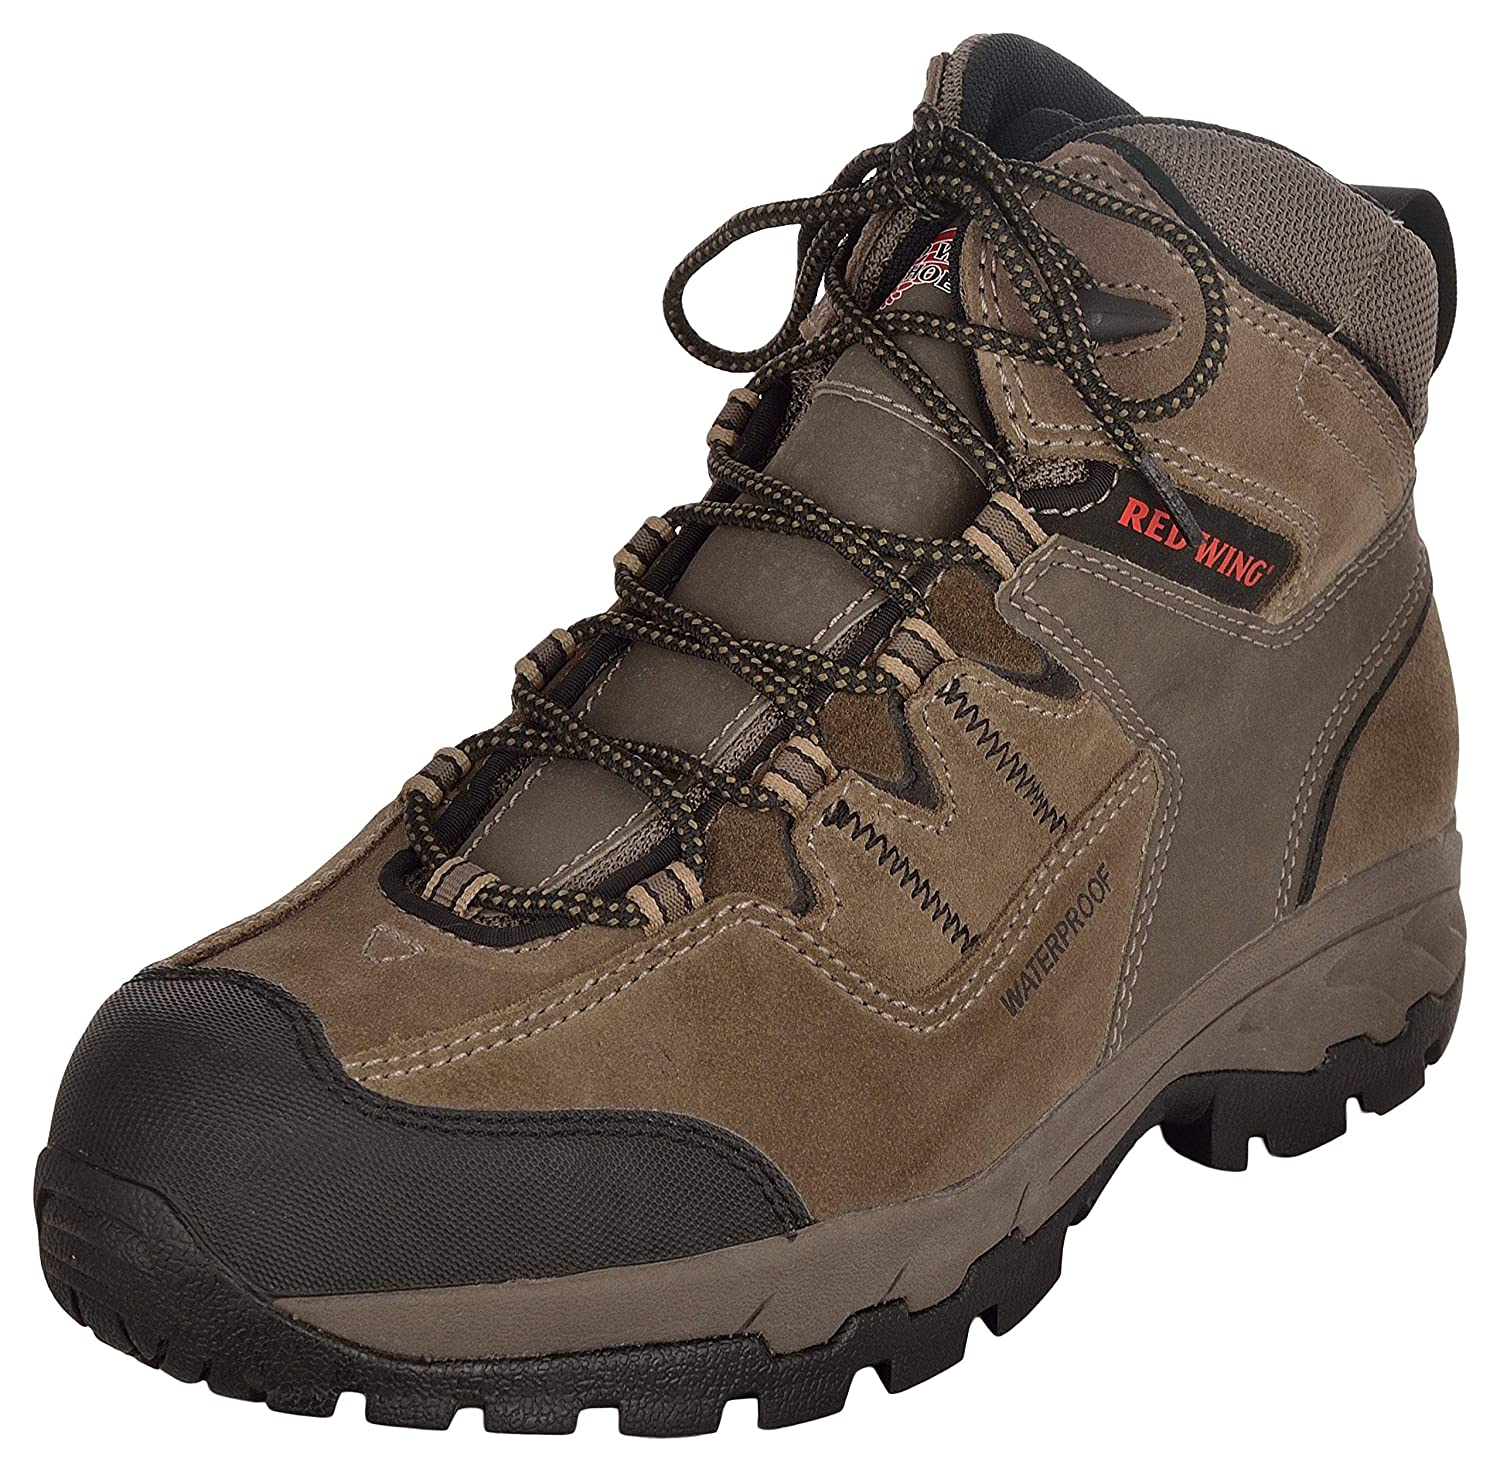 RED WING Men's Brown Leather Safety